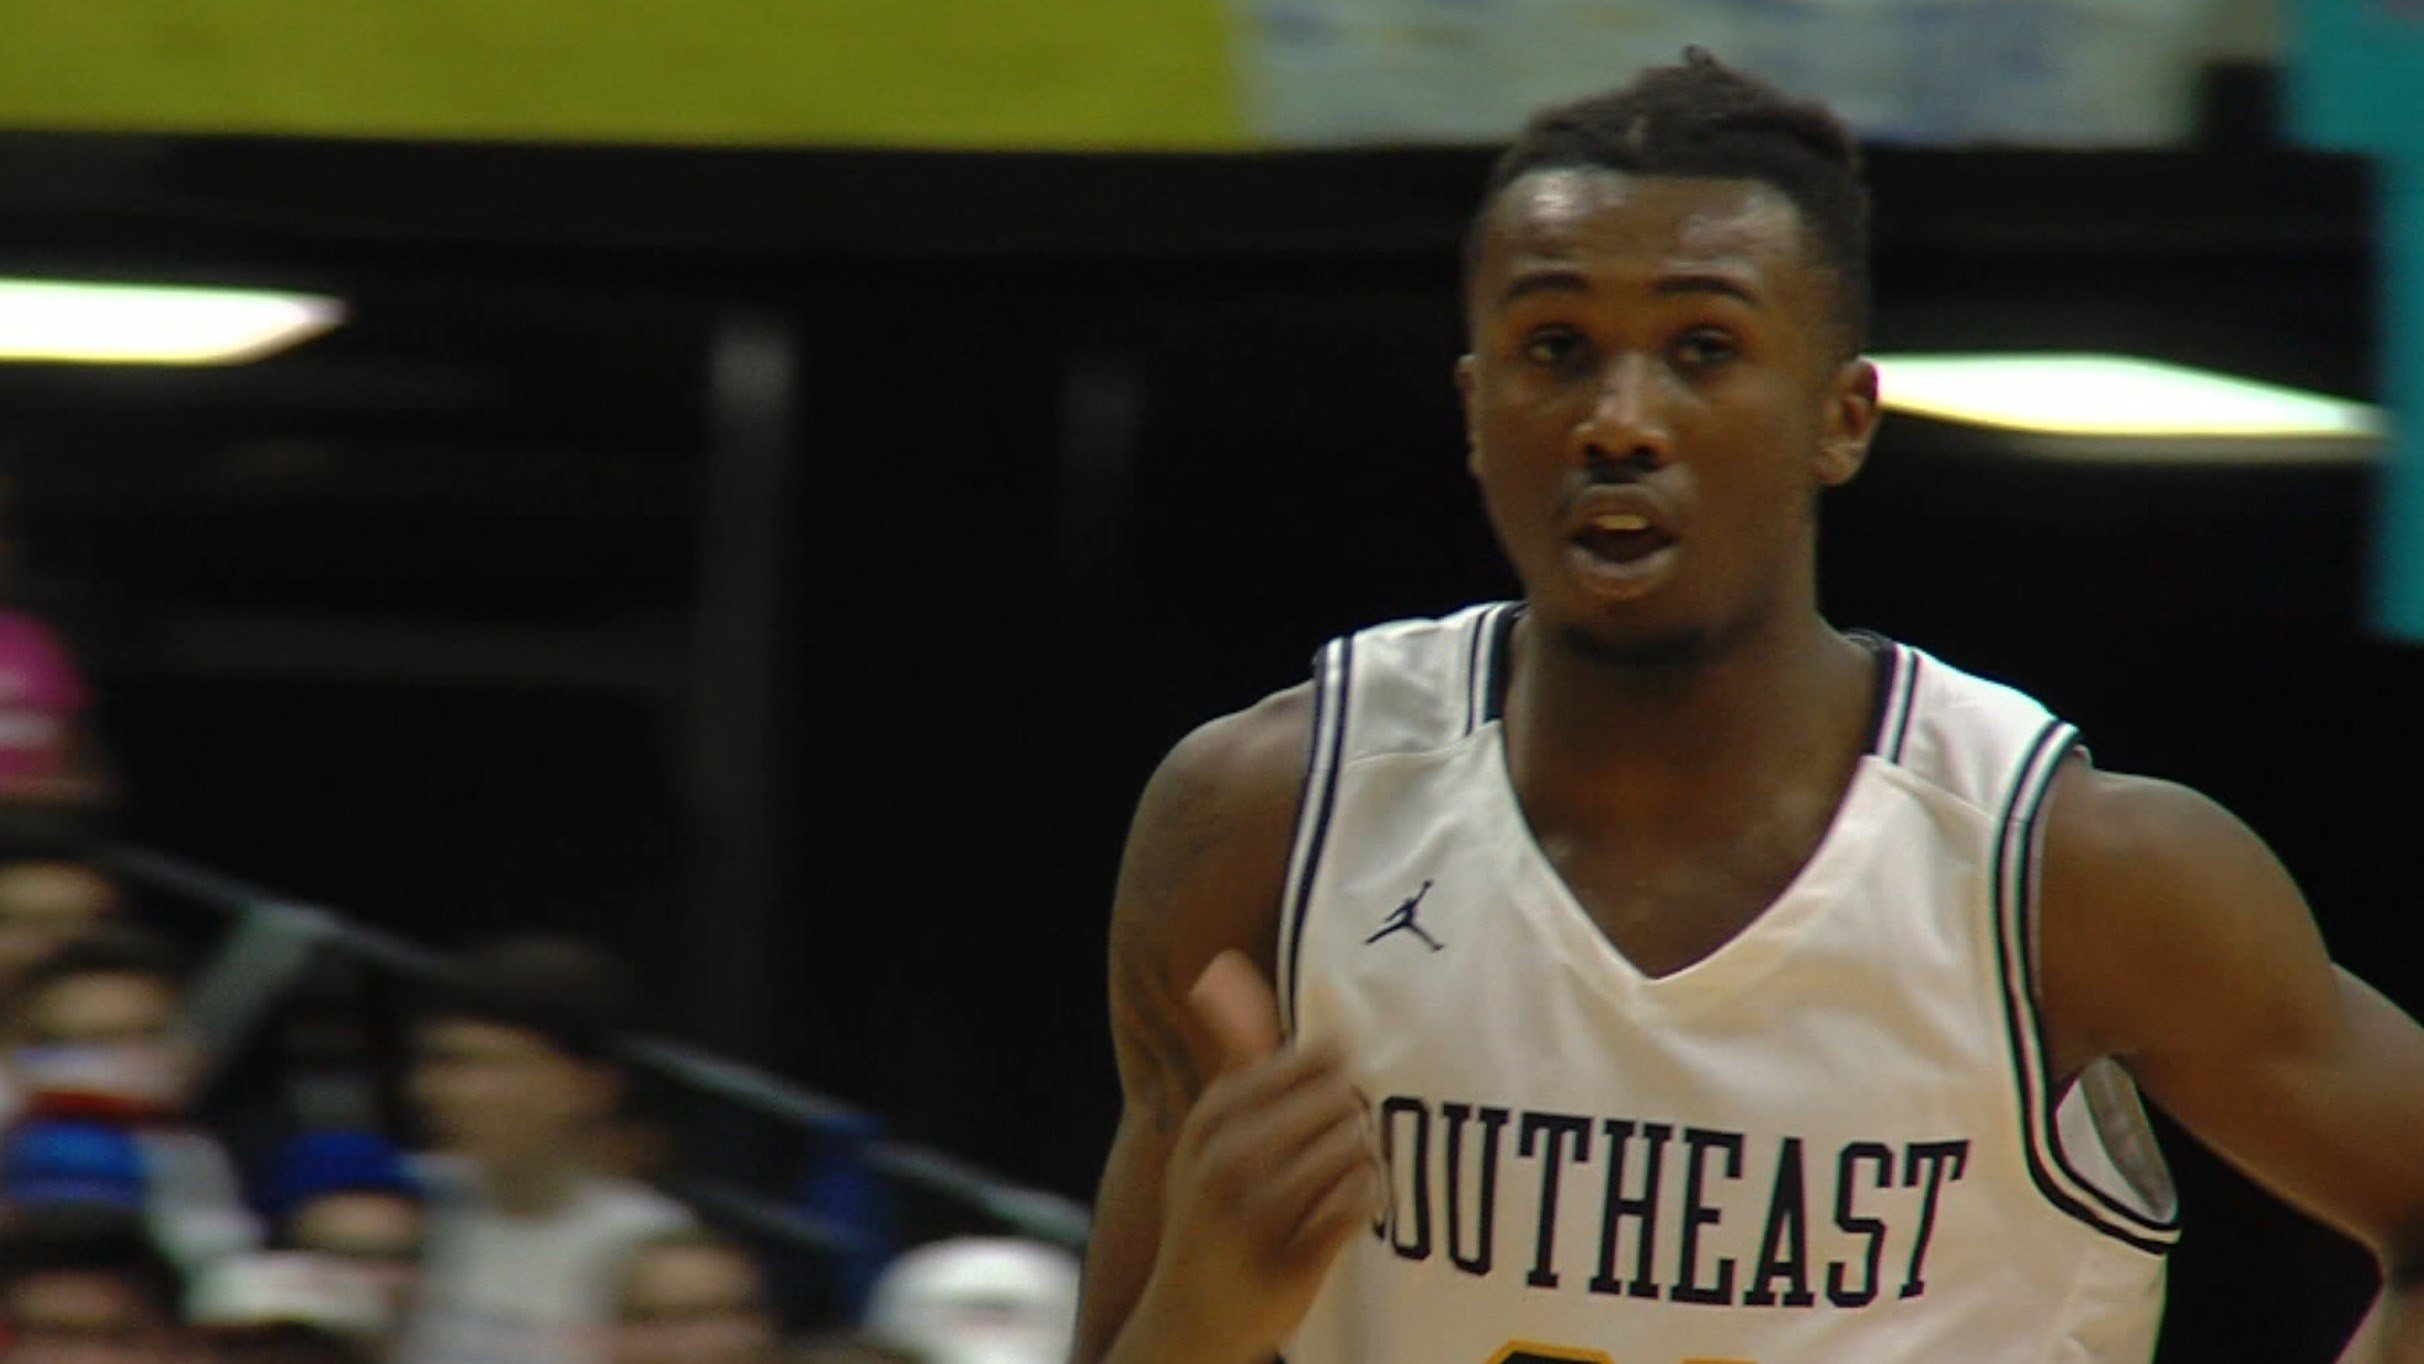 Anthony Fairlee helped lead Southeast to the City championship Saturday